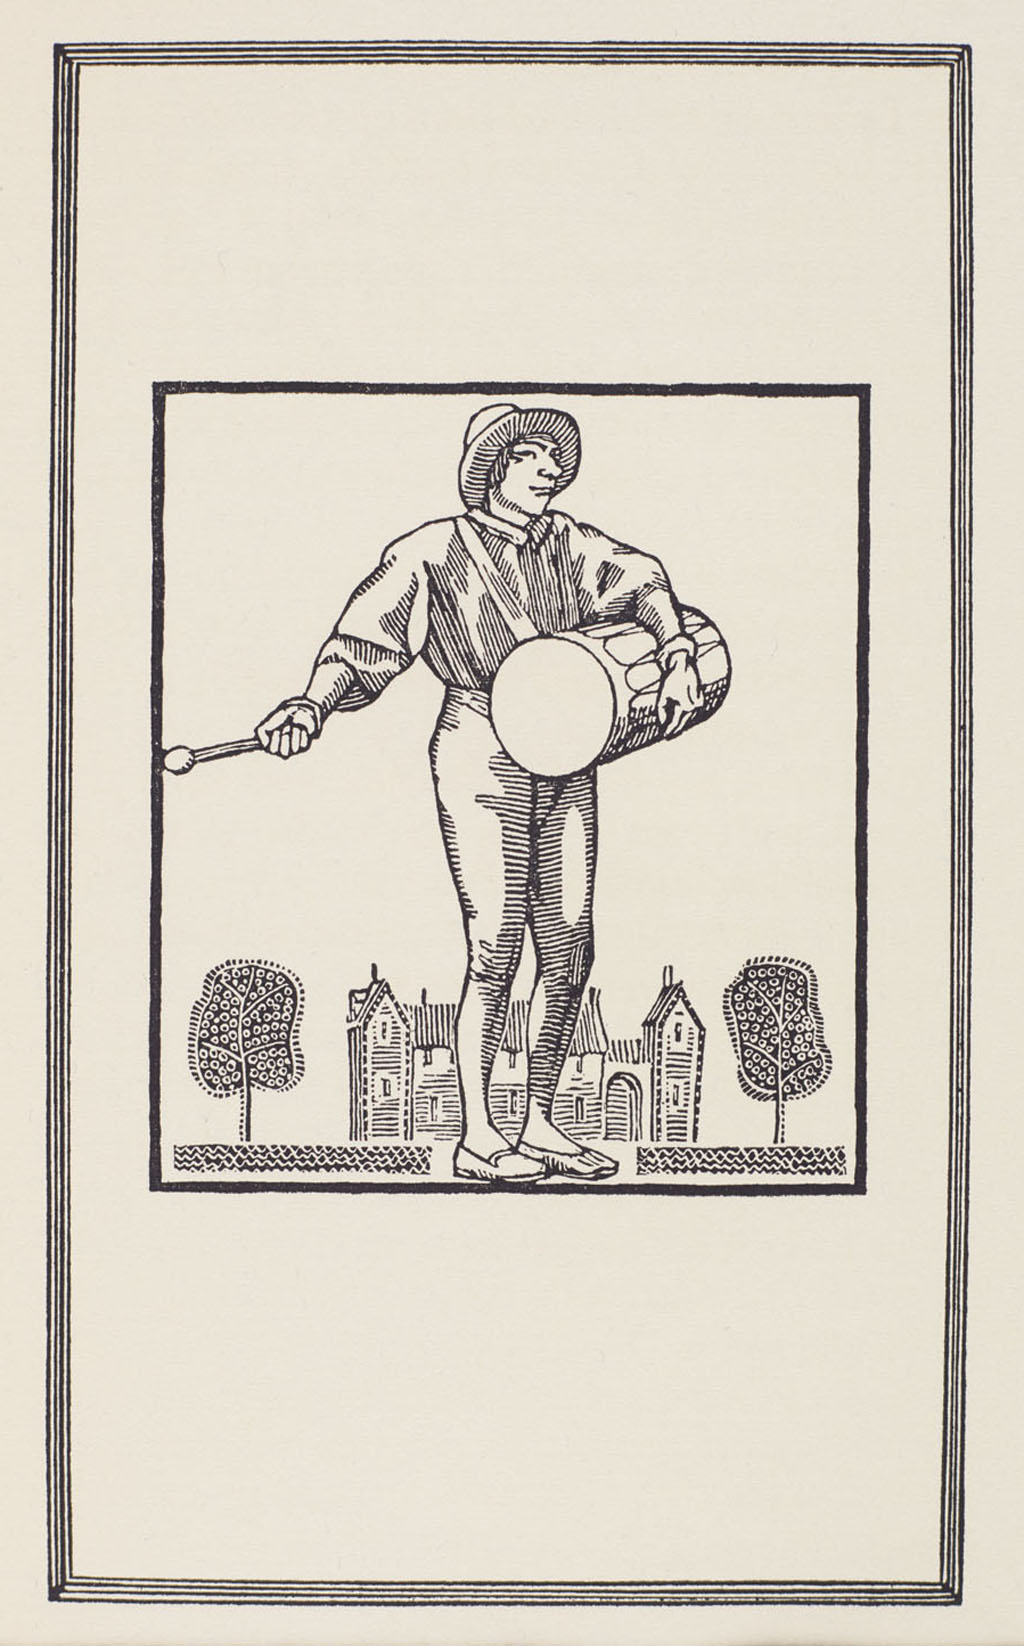 Illustration from Gargantua and Pantagruel by Rabelais (New York: Limited Editions Club, 1936), vol. I, p. 11. Image from Rare Book and Manuscript Library, Columbia University.